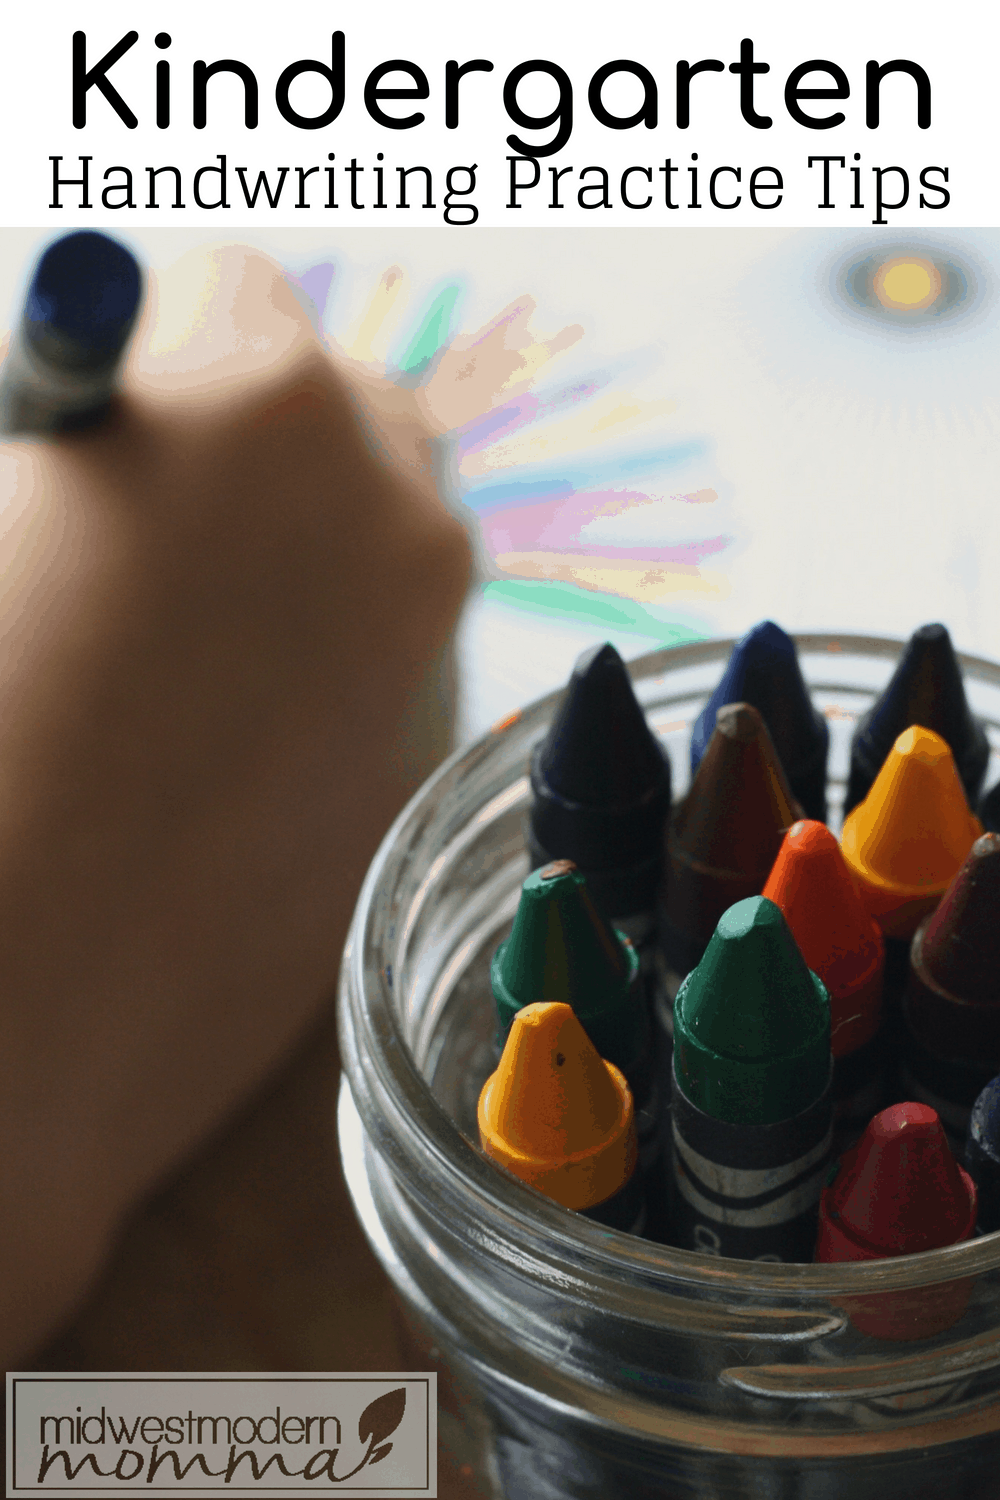 Kindergarten Homeschooling Tips are a must and these Kindergarten Handwriting Tips are just what you need to stay on top of your little one learning how to write their name and more!